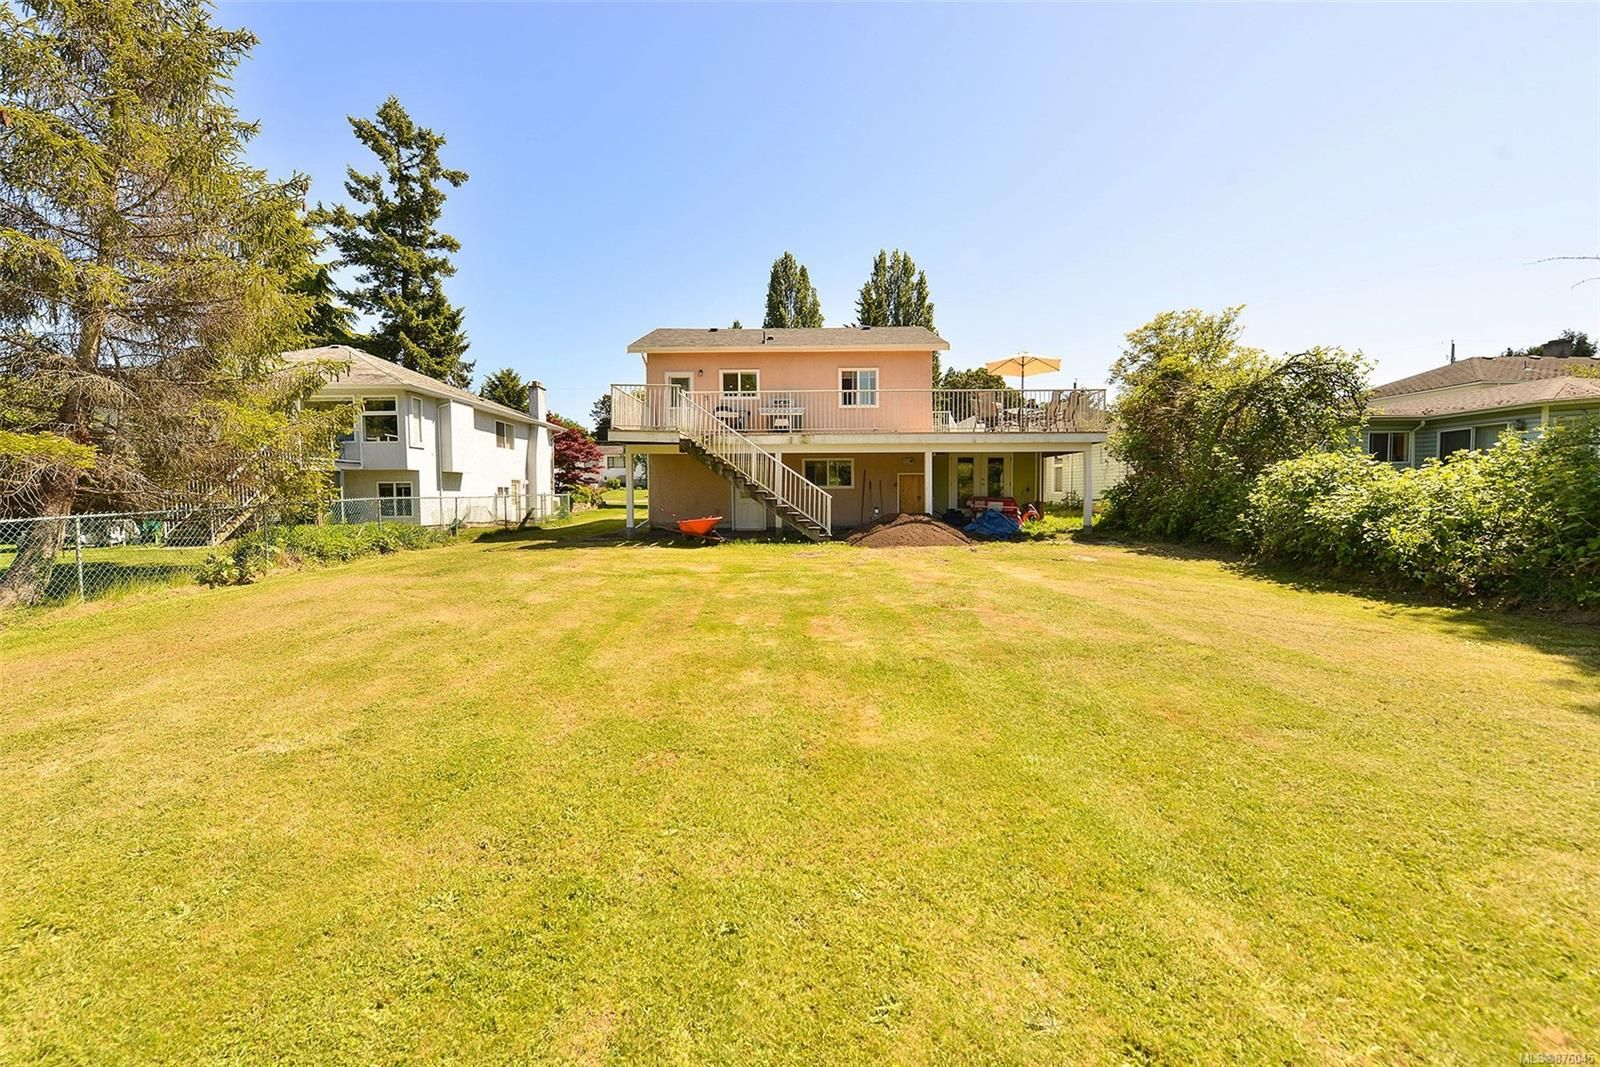 Main Photo: 914 DUNN Ave in : SE Swan Lake House for sale (Saanich East)  : MLS®# 876045